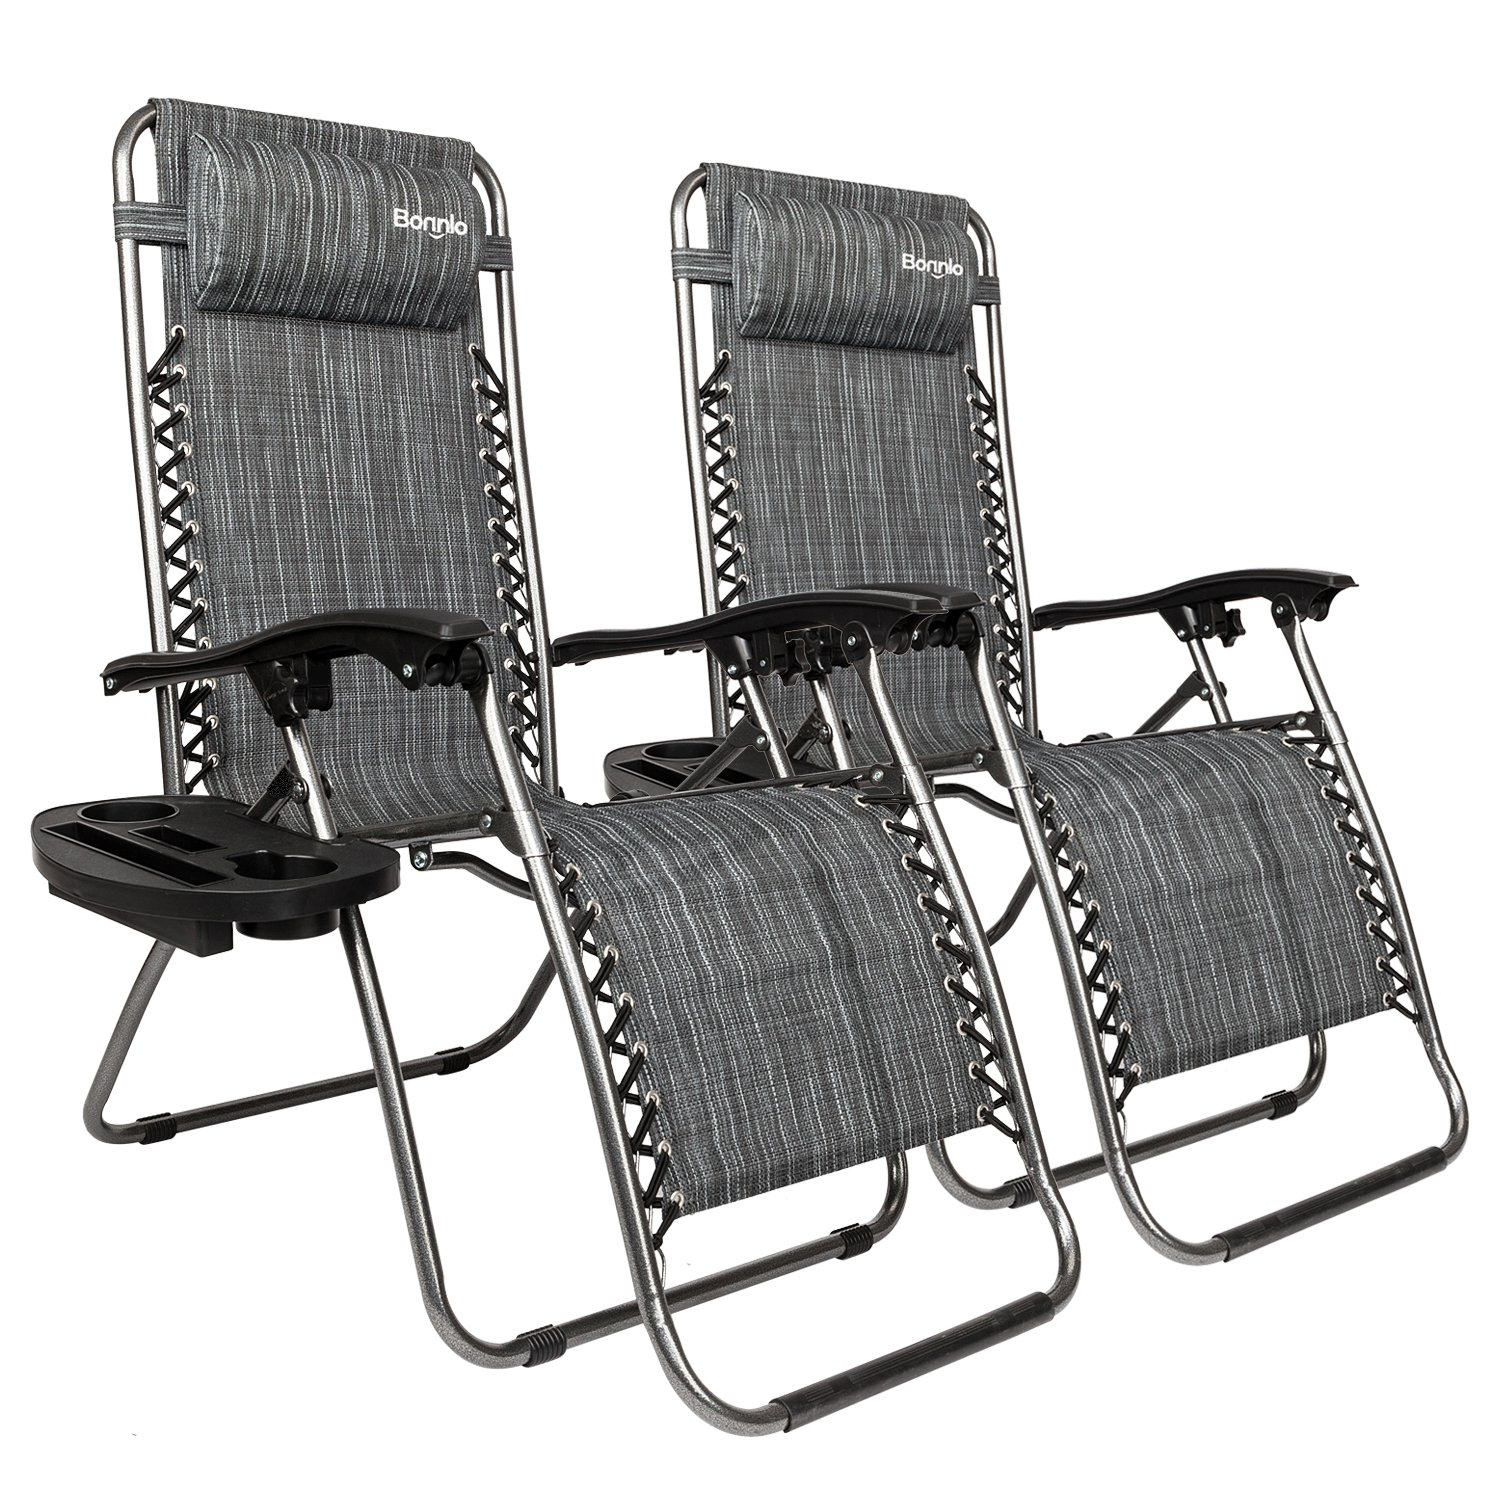 Bonnlo Infinity Zero Gravity Chair, Outdoor Lounge Patio Chairs with Pillow and Utility Tray Adjustable Folding Recliner for Deck,Patio,Beach,Yard Pack 2(Grey) by Bonnlo